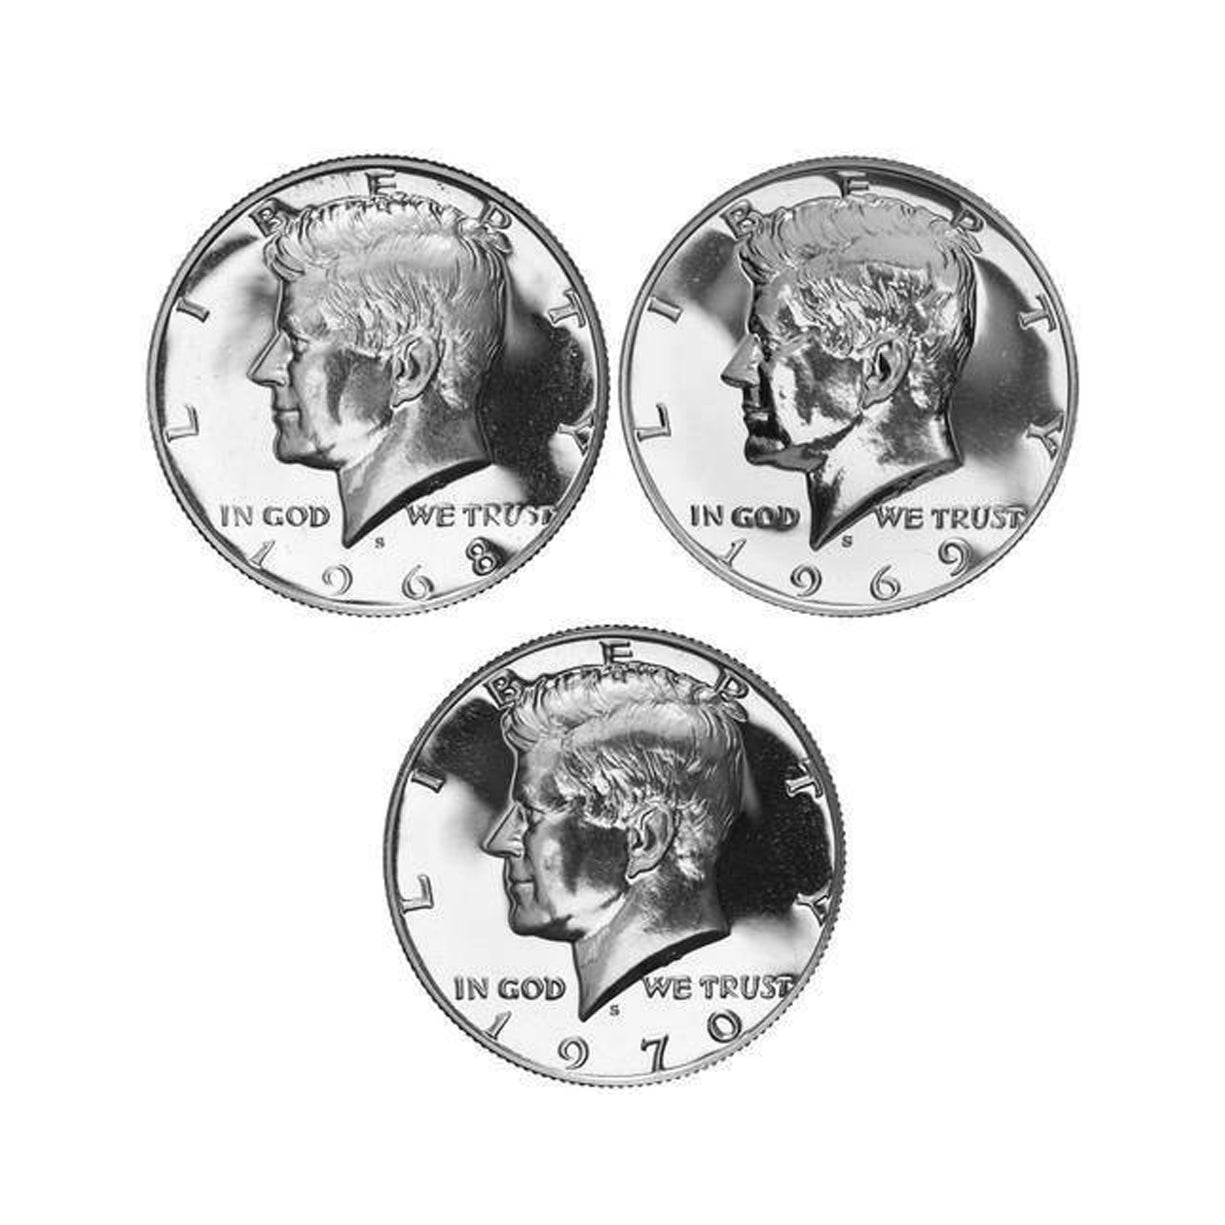 1968-1970 S Proof Kennedy Half Dollar Run 40% Silver 3 Coins